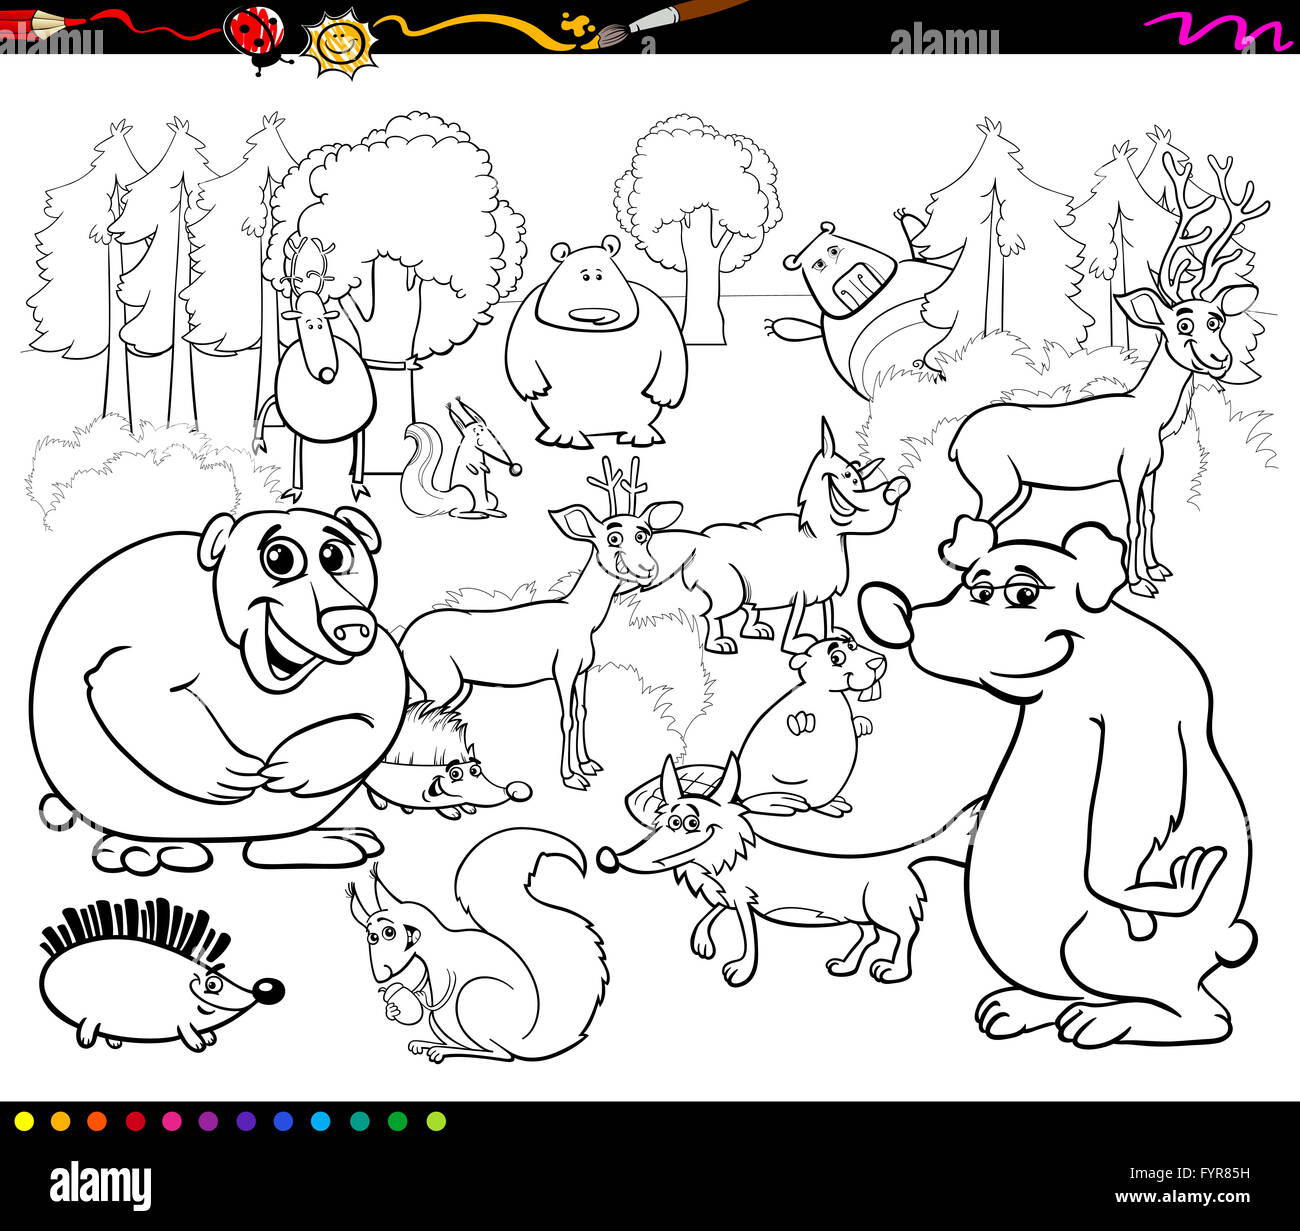 Wild Forest Animals Coloring Book Stock Photos & Wild Forest Animals ...